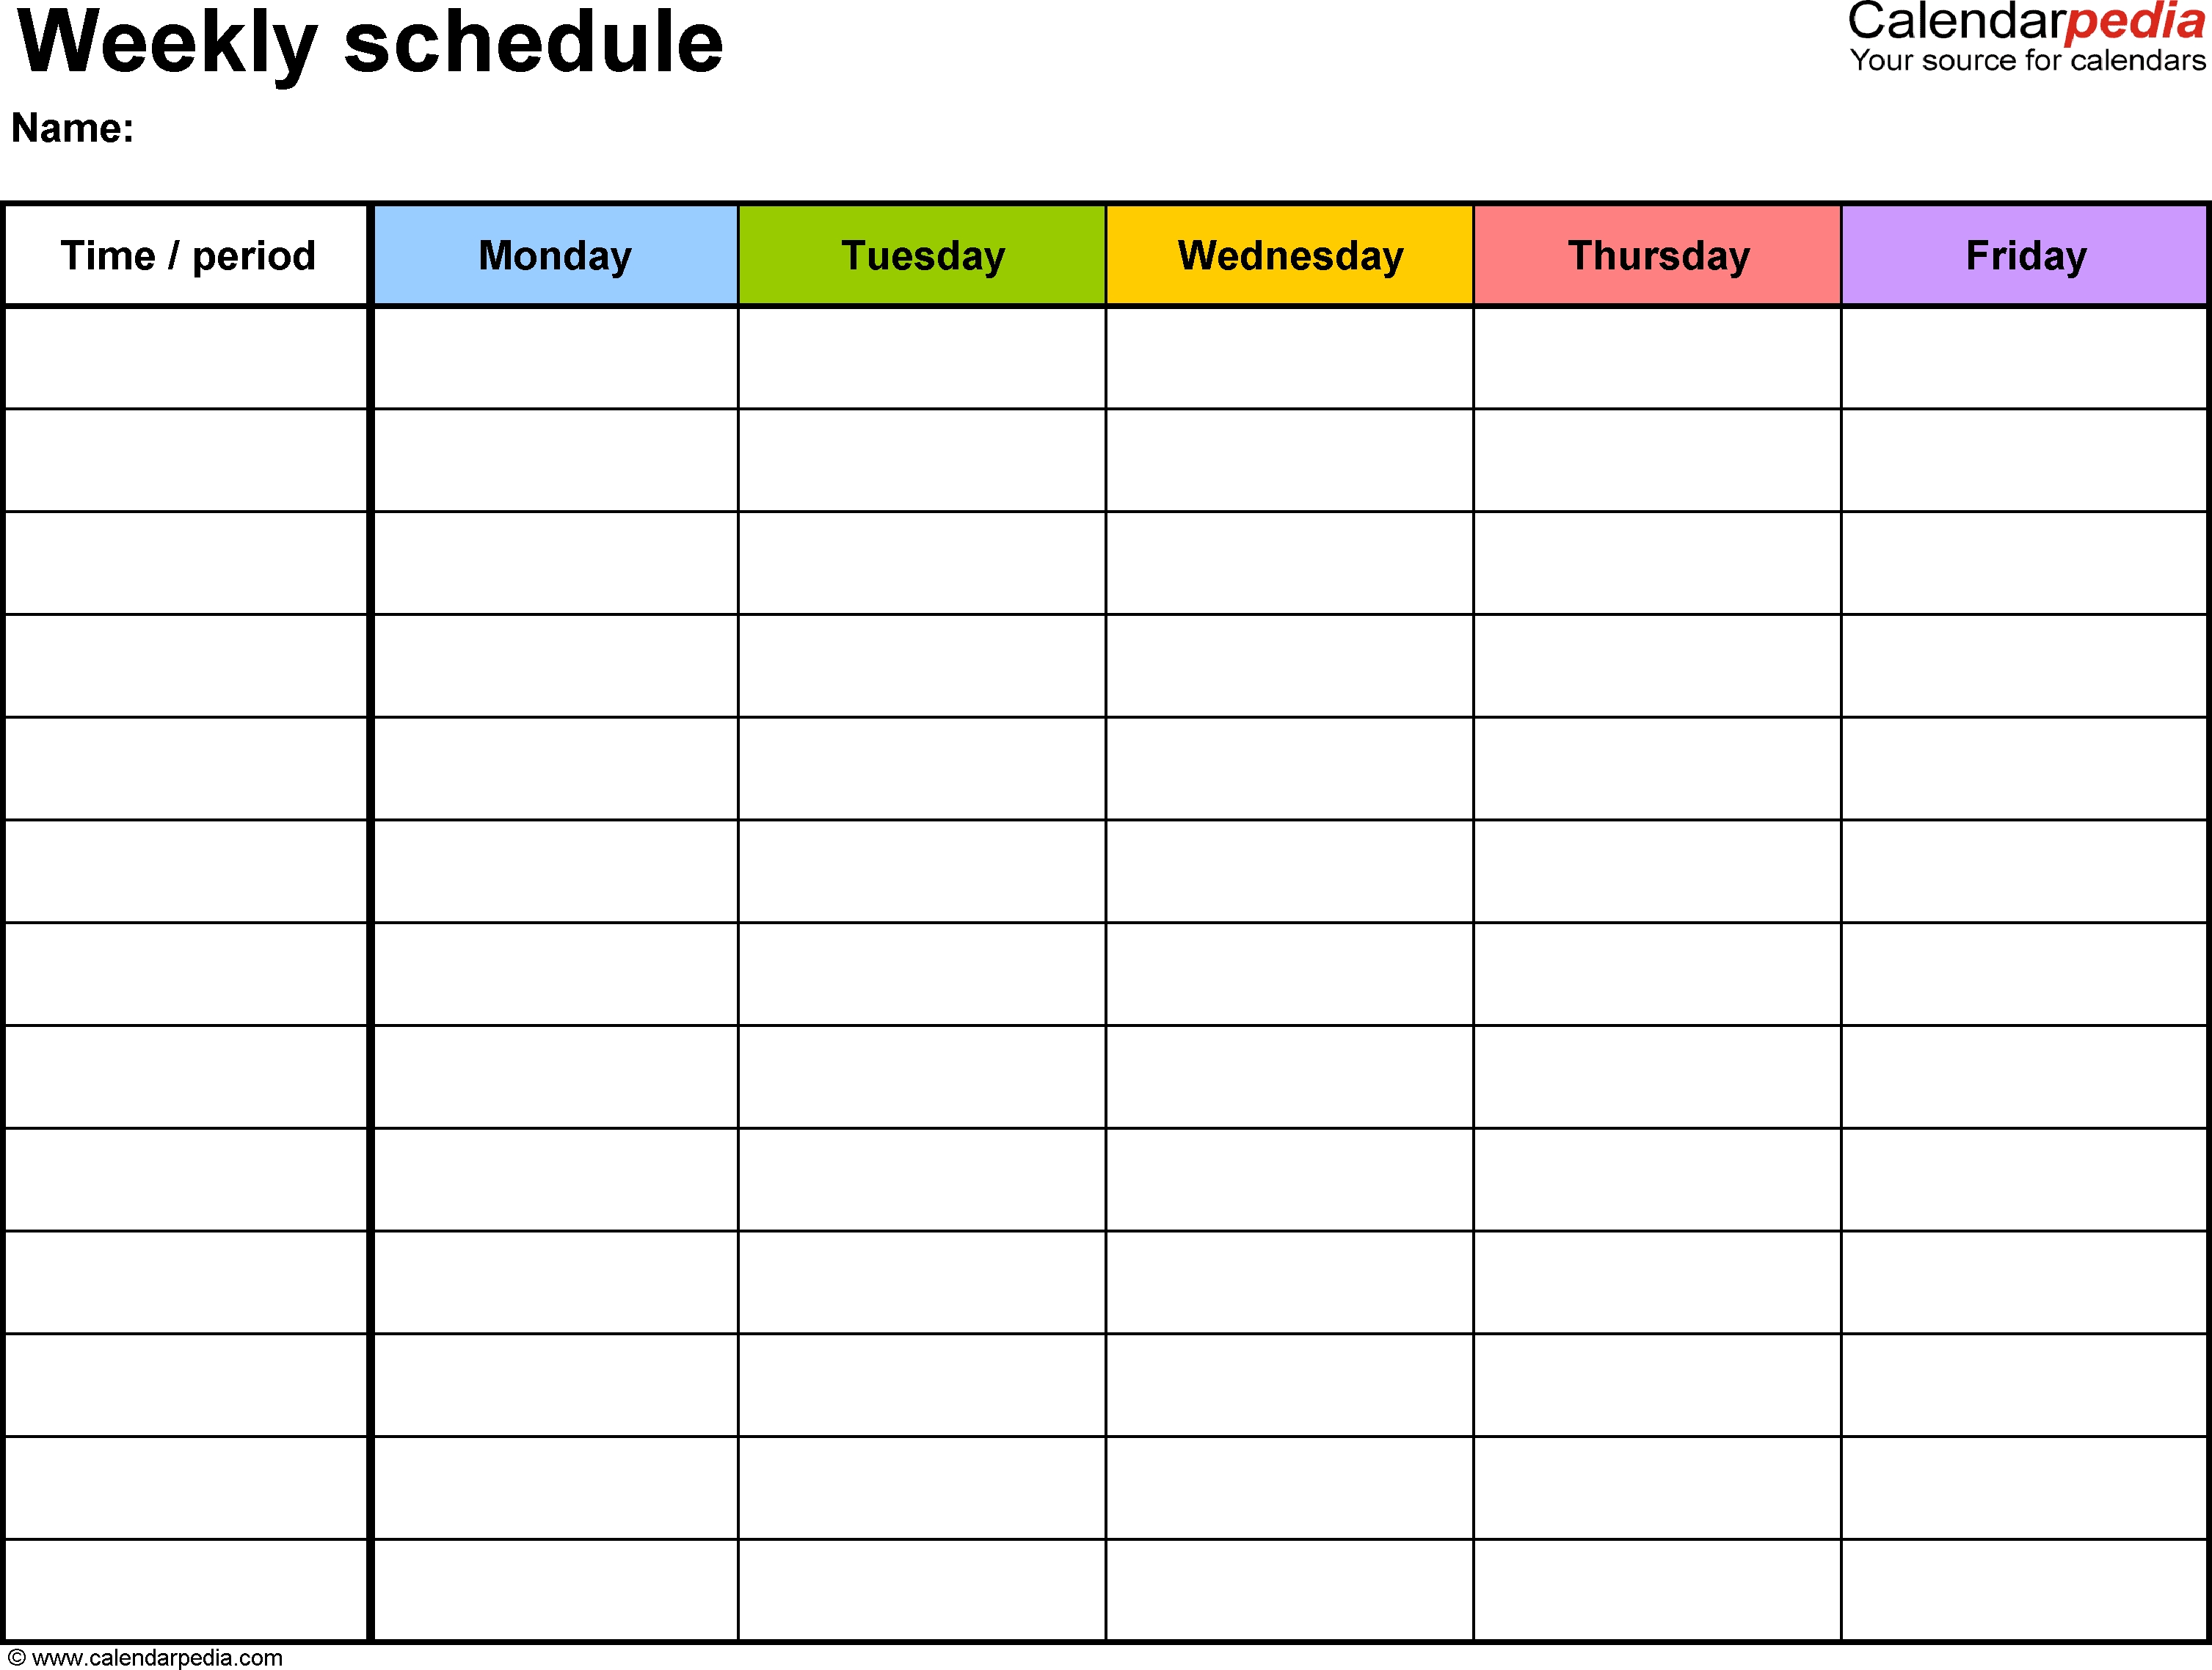 Free Weekly Schedule Templates For Word - 18 Templates with Free One Week Schedule Template